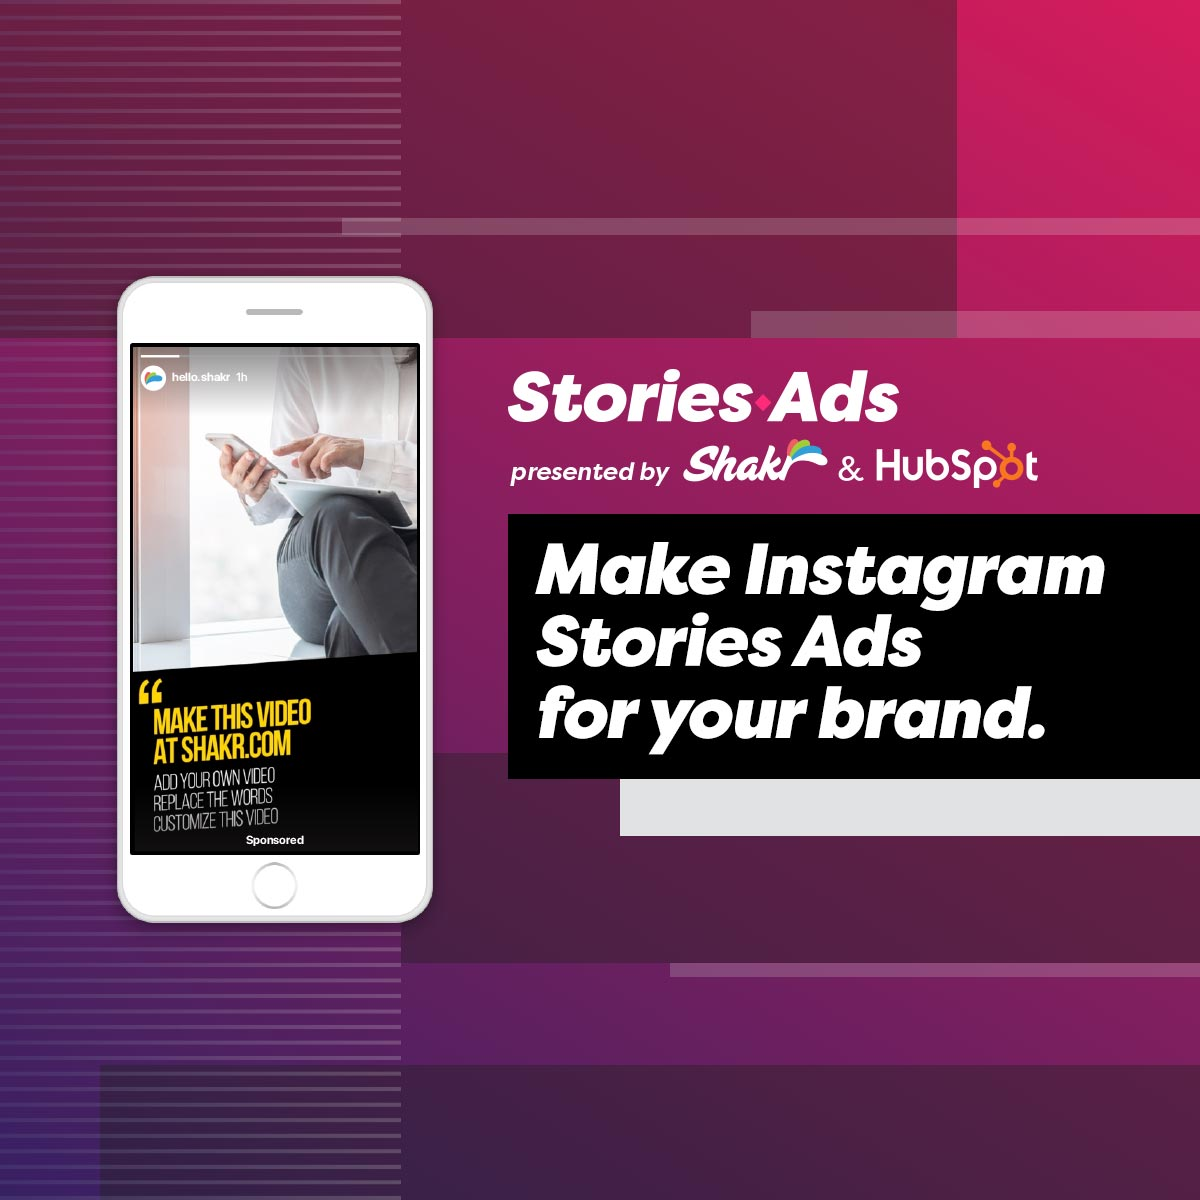 StoriesAds - Make Instagram Stories Ads